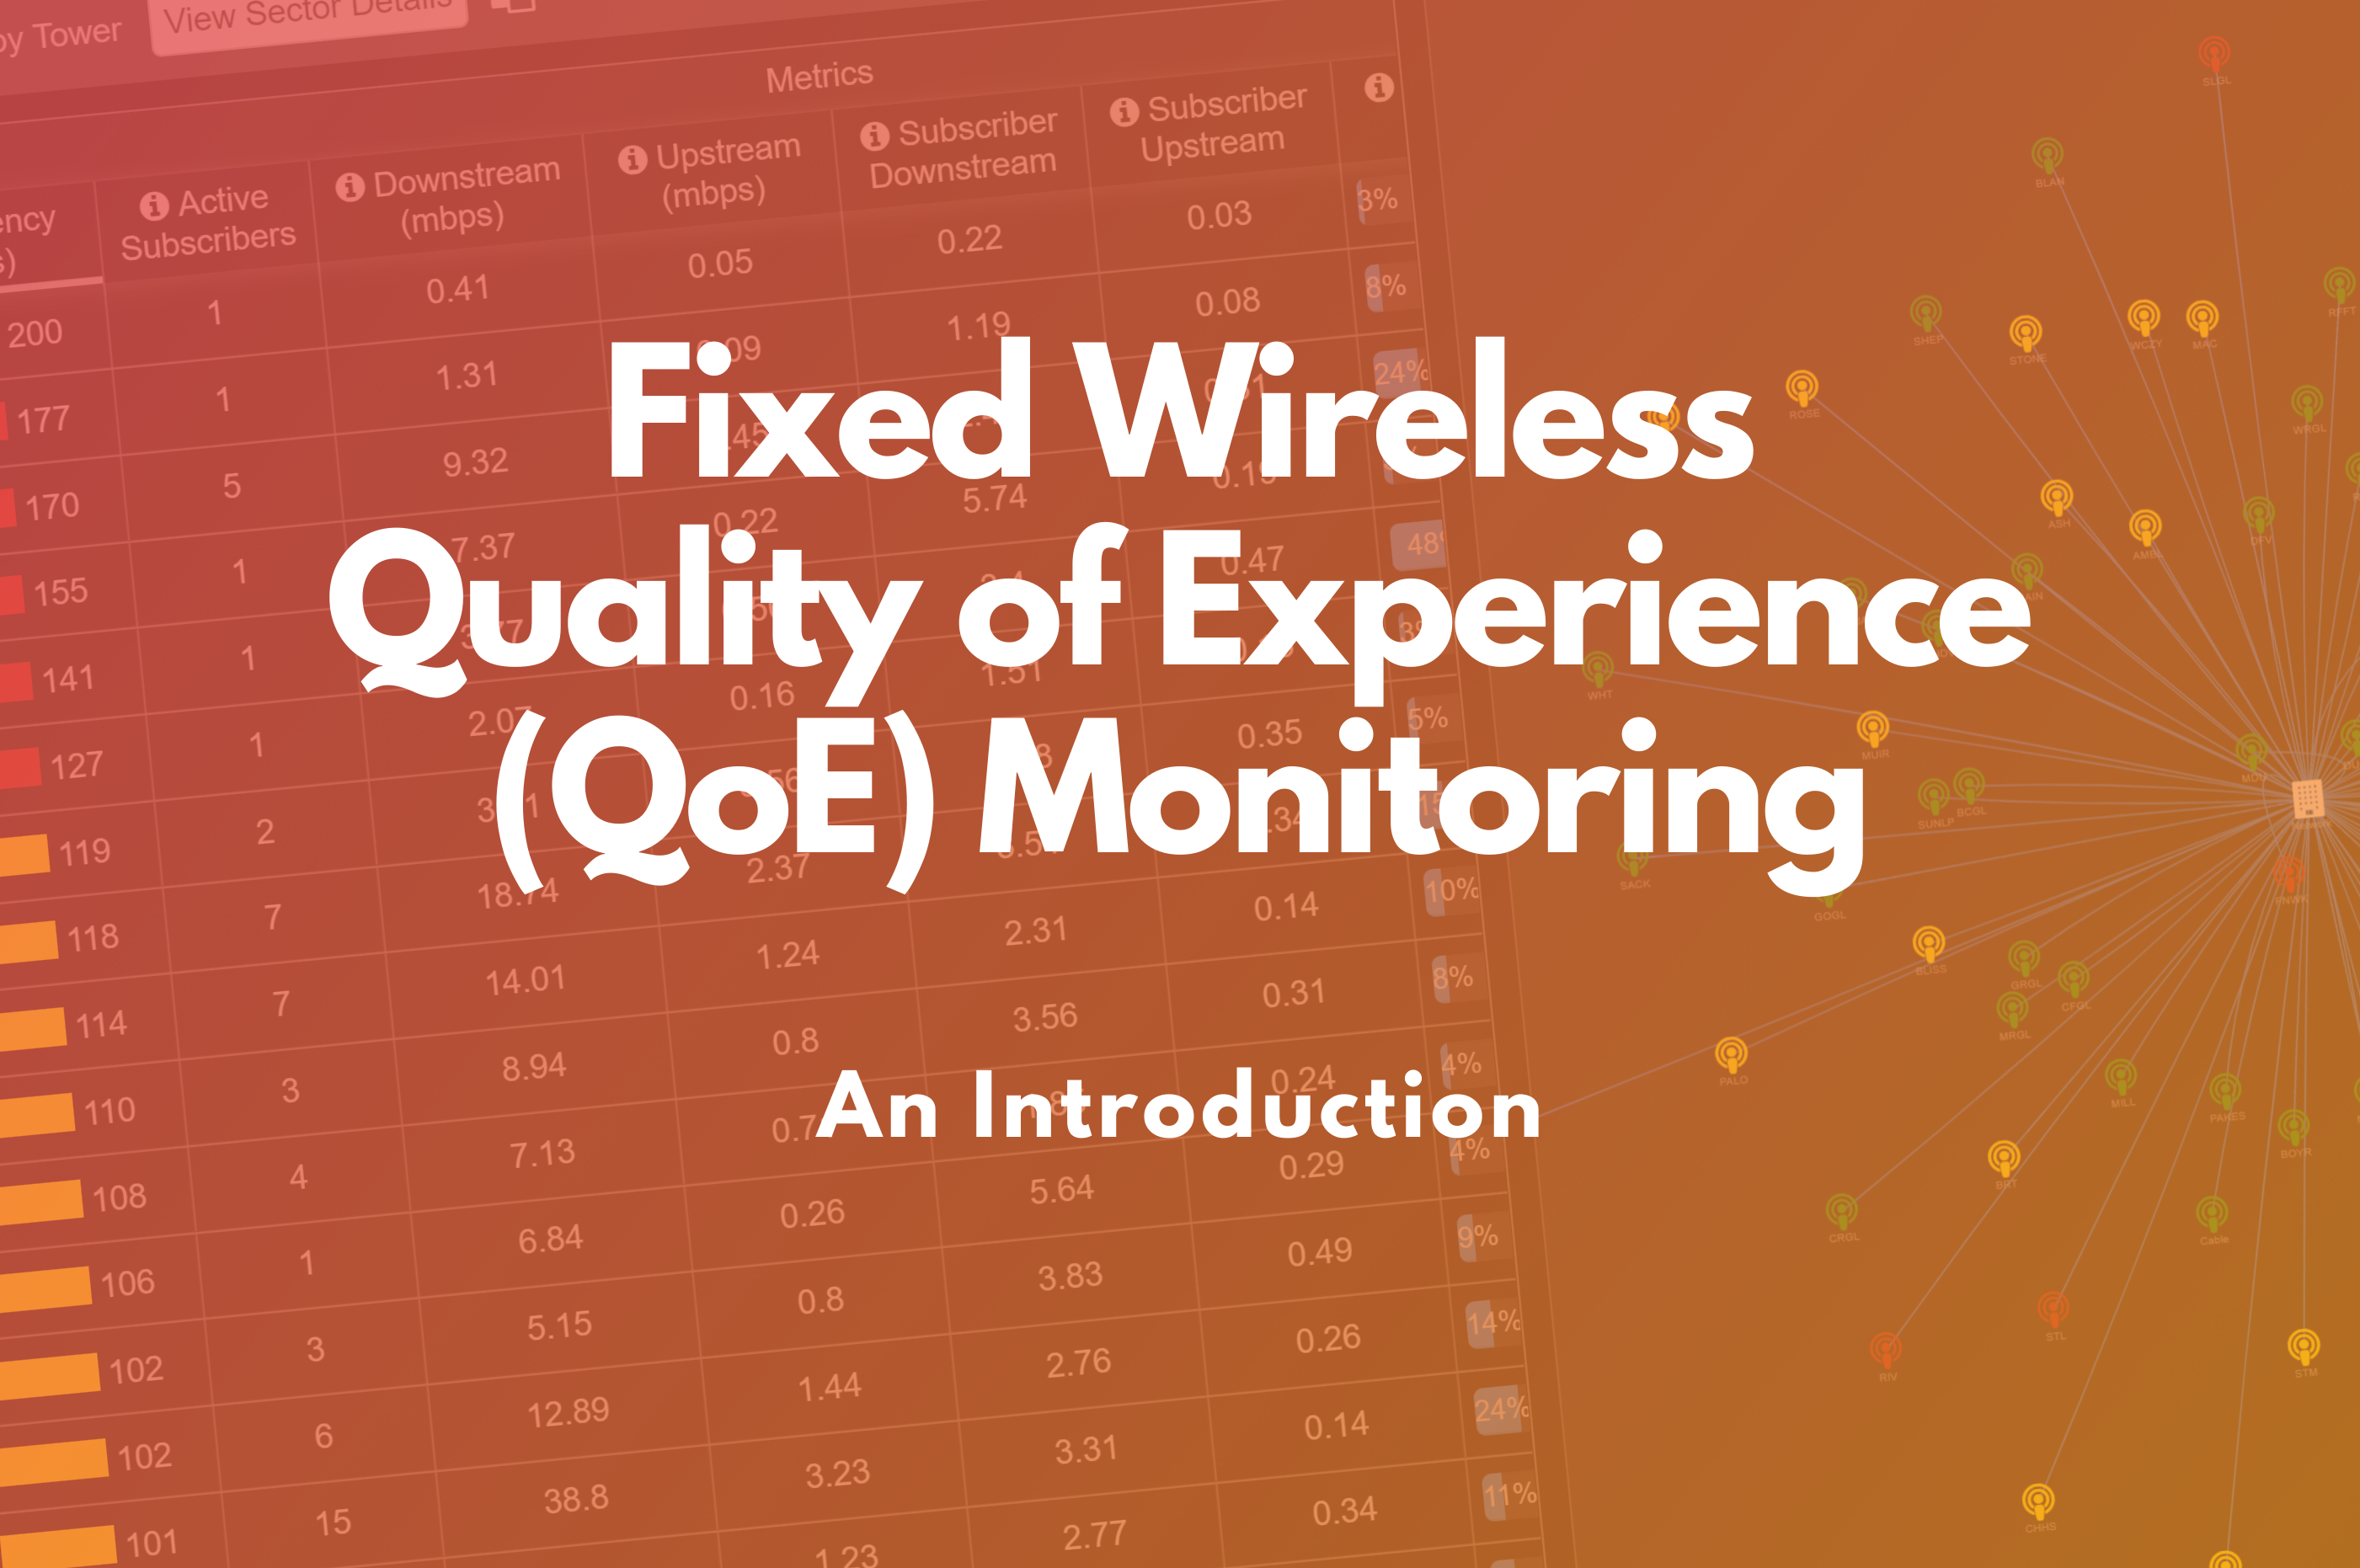 Video Blog – Fixed Wireless Quality of Experience (QoE) Monitoring: An Introduction